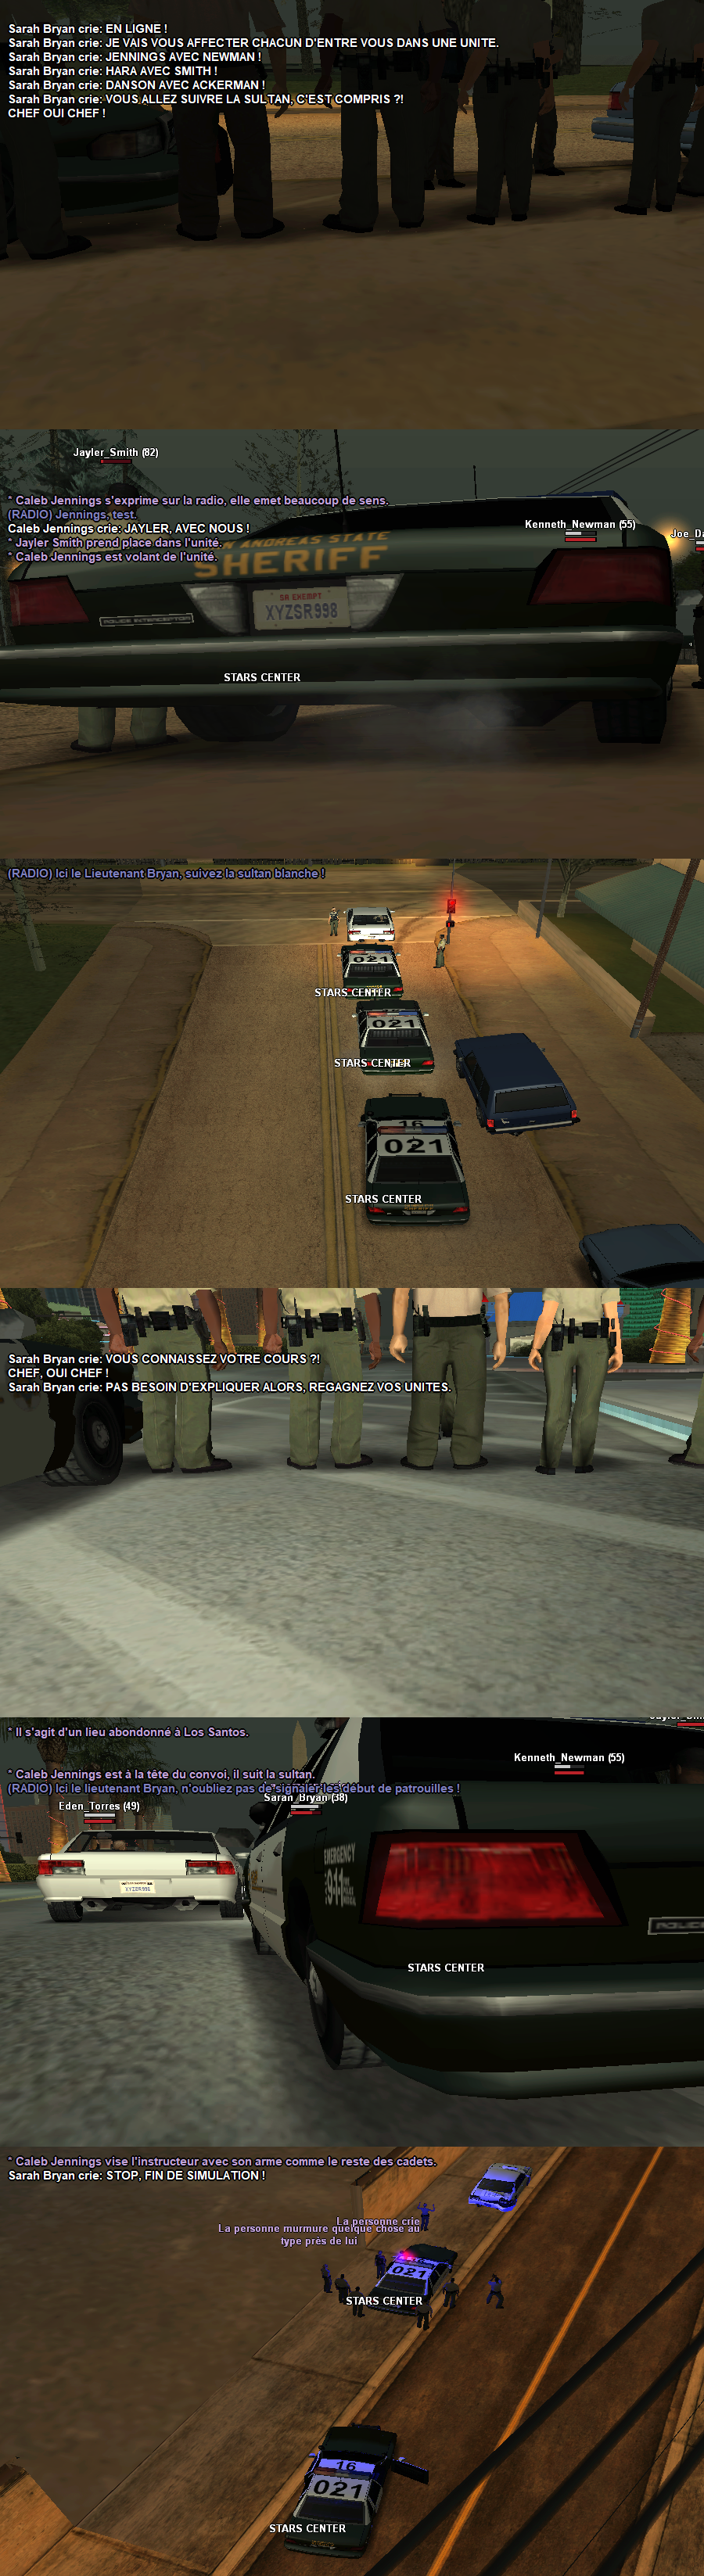 Los Santos Sheriff's Department - A tradition of service (8) - Page 9 1532051310-b